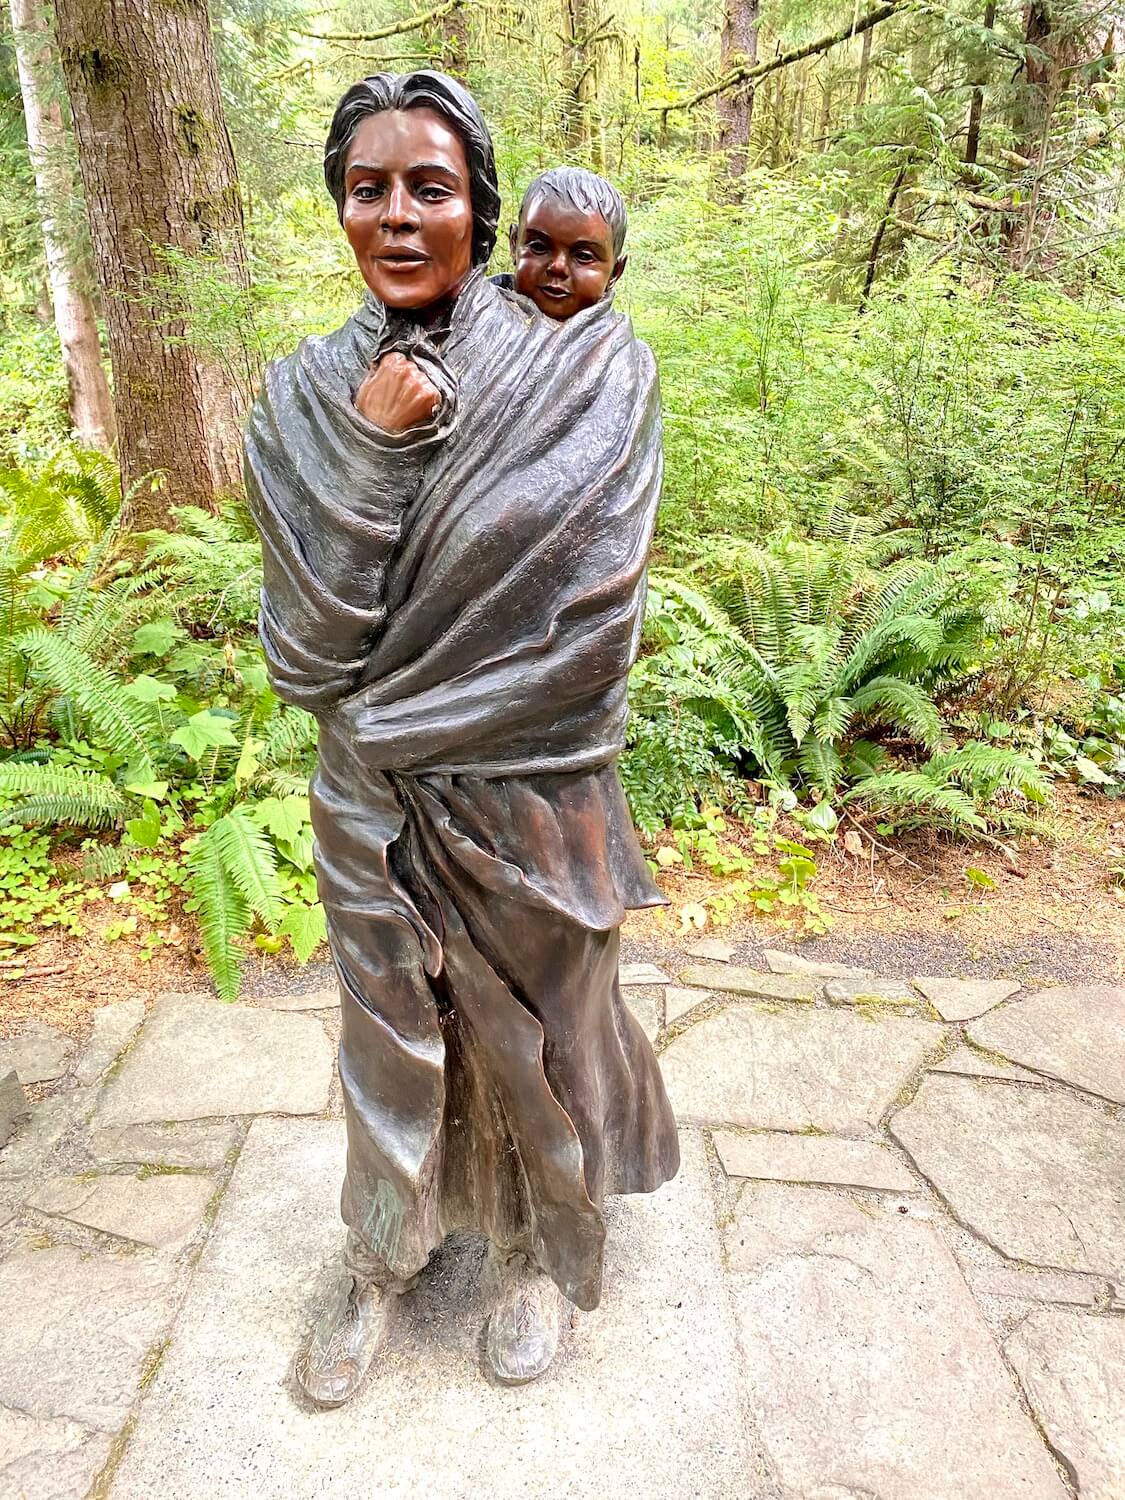 Pacific Northwest travel offers many ways to learn more about the people who inhabited this land for millennia before the first settlers. Here is a bronze statue of Sacagaweja, known for being instrumental in assisting the Lewis and Clark expedition.